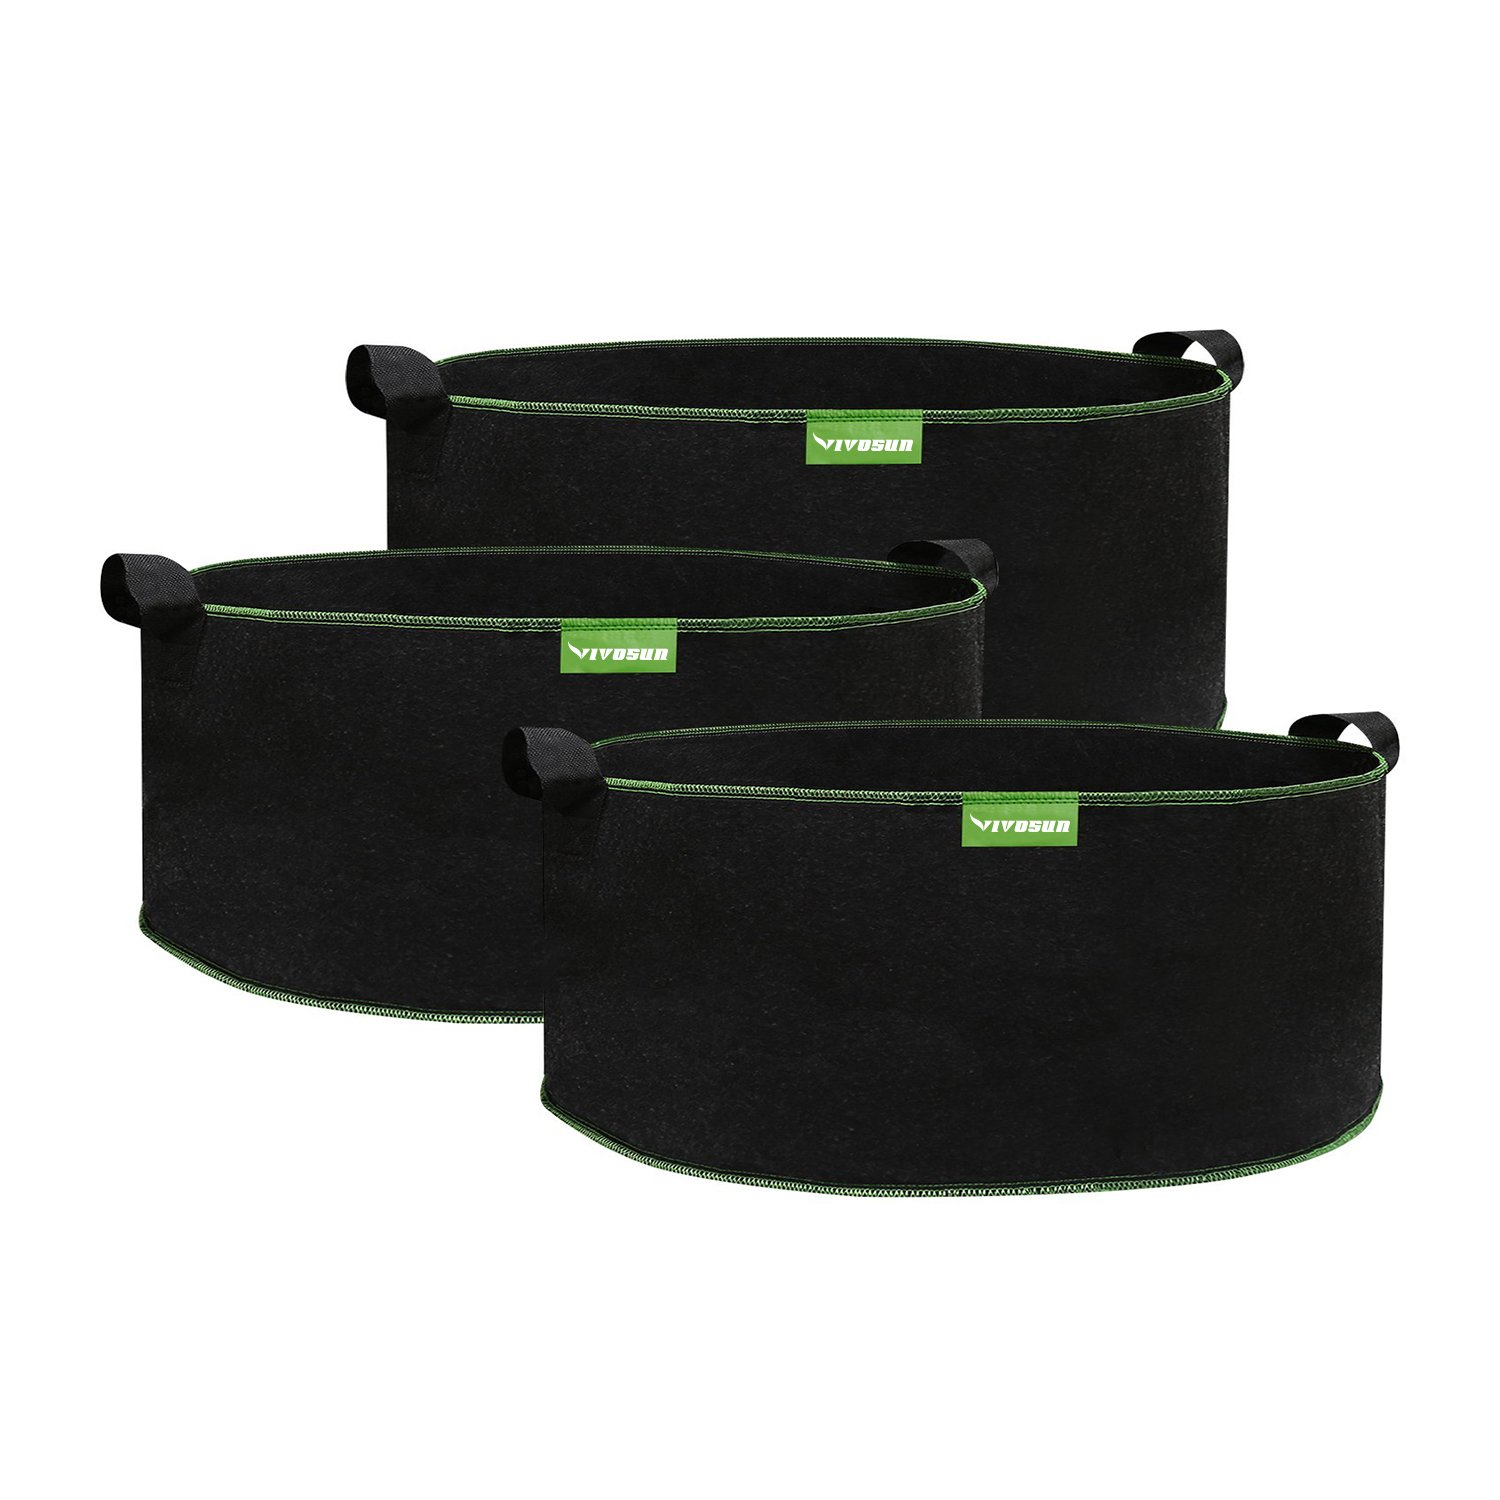 VIVOSUN Grow Bags 3-Pack 4 Gallons 350D Grow Bags with Handles and Reinforced Seam by VIVOSUN